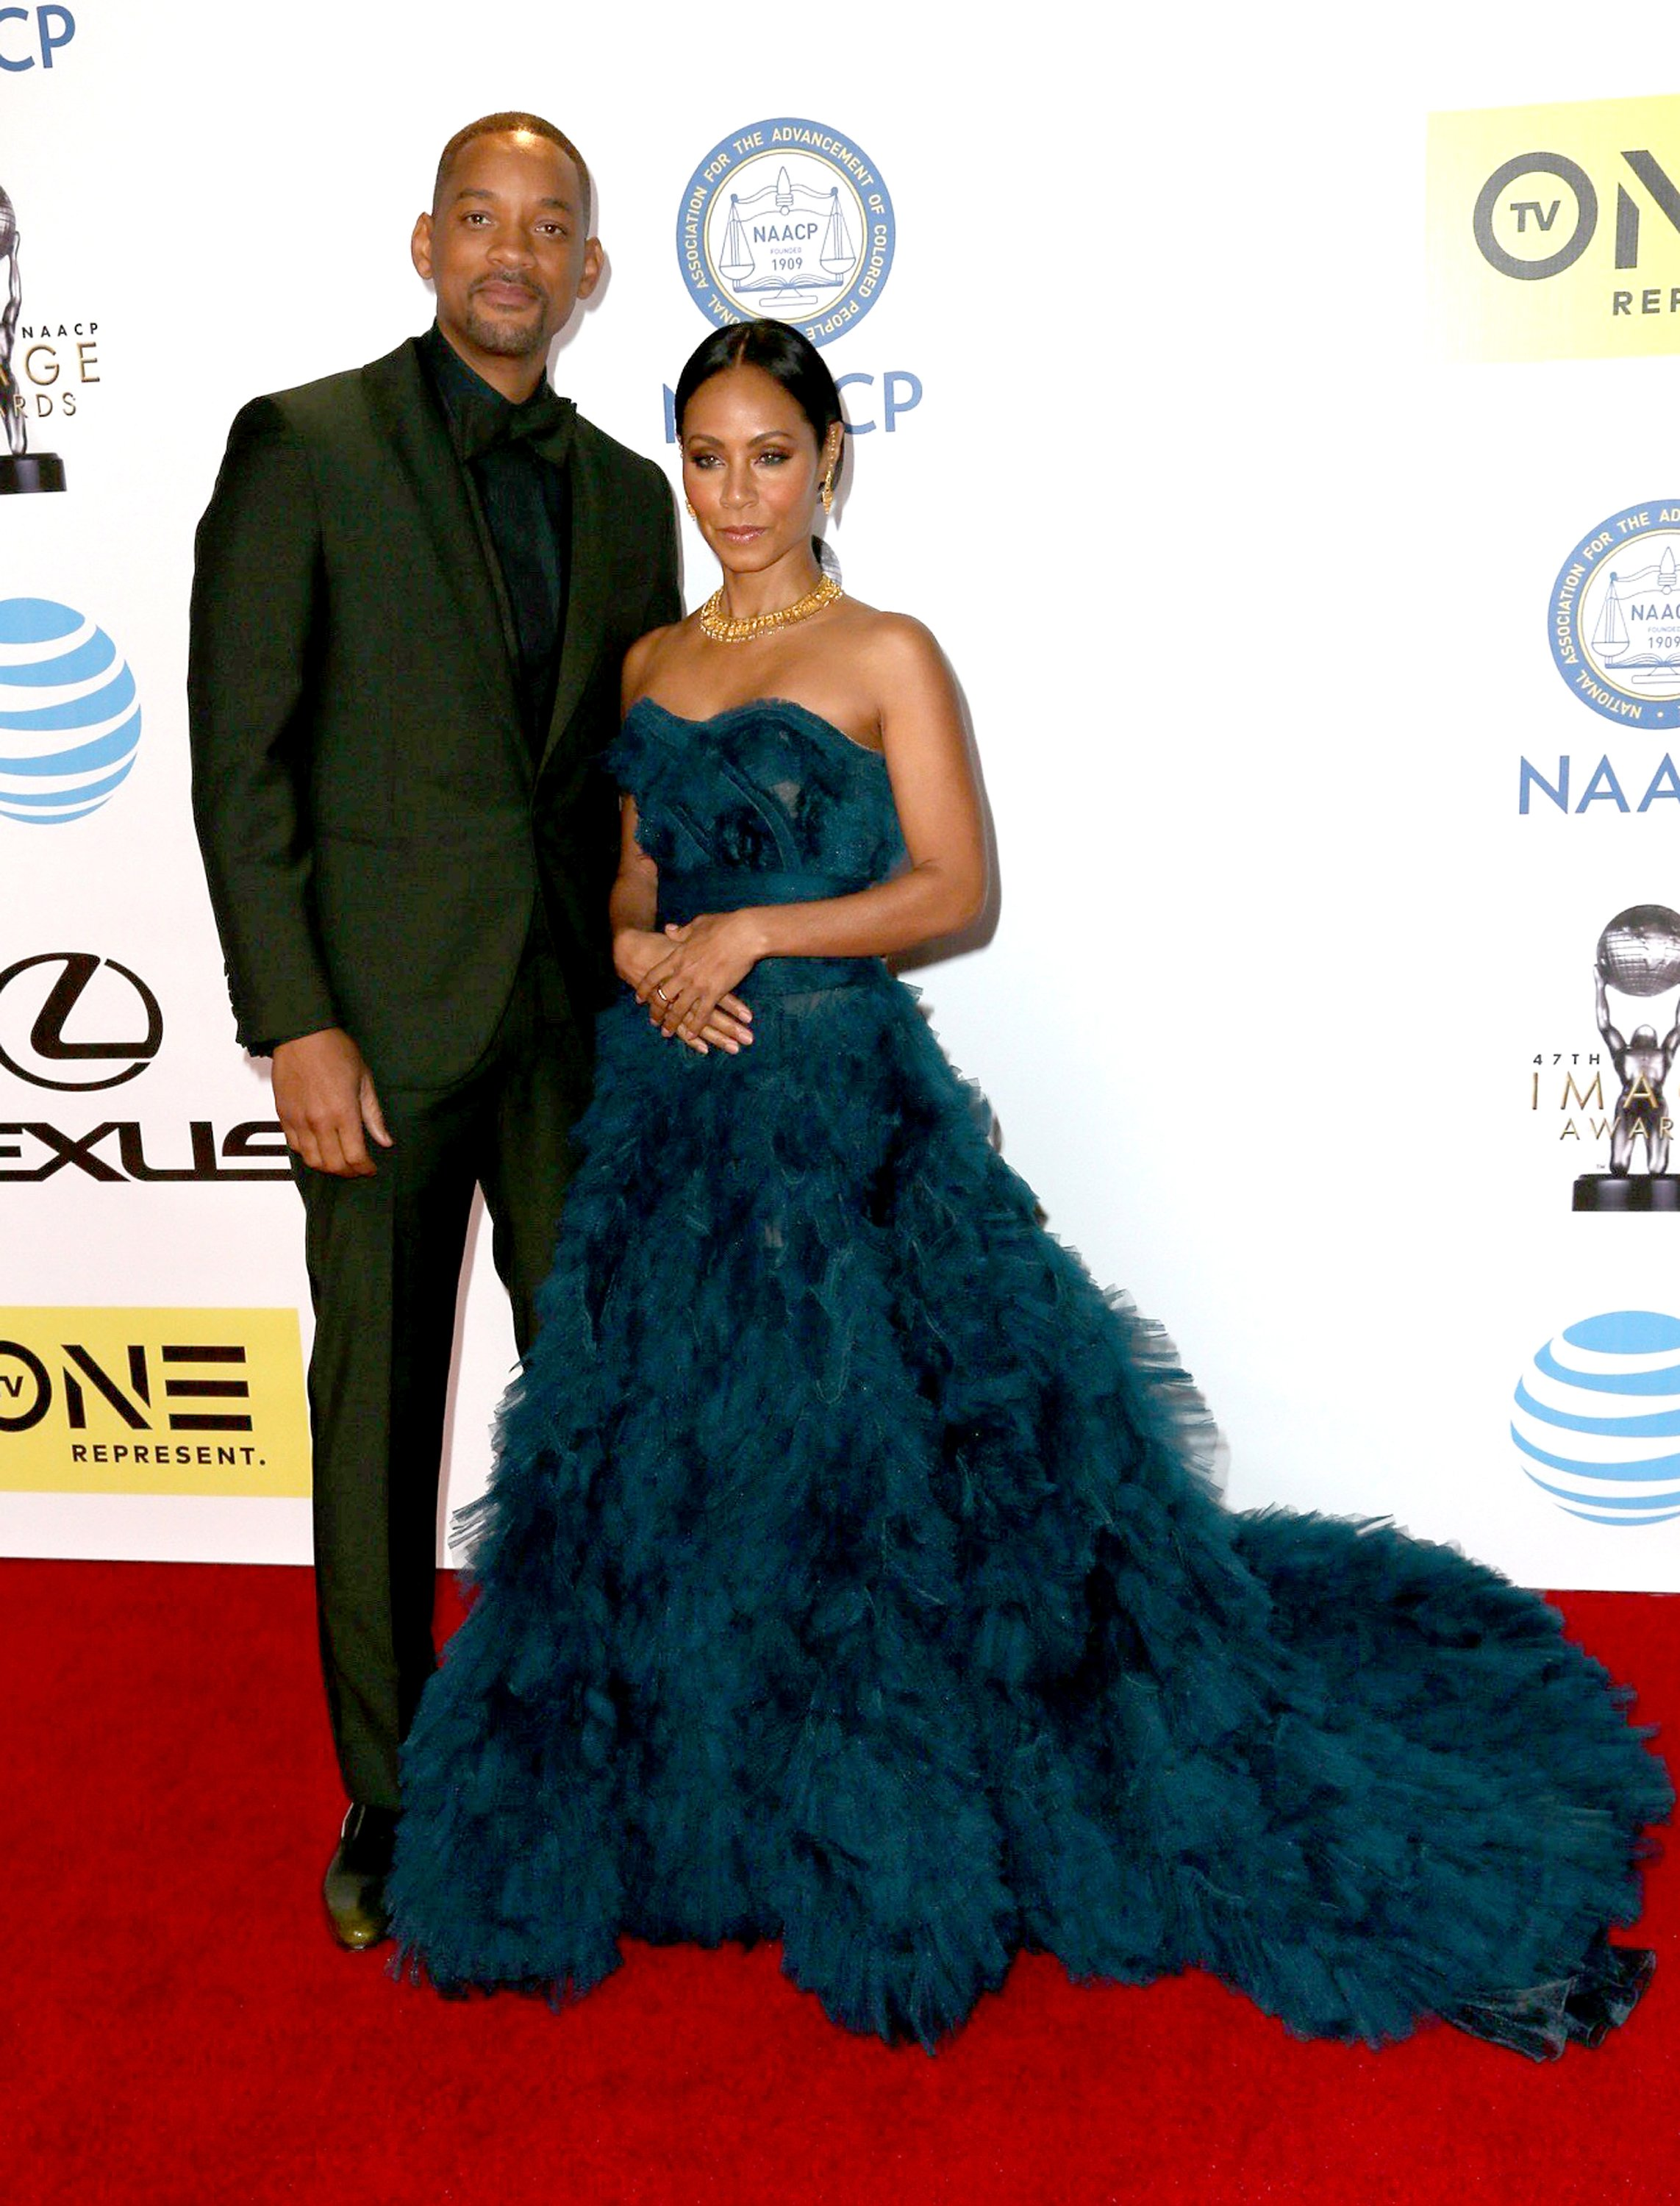 Image Credits: Getty Images / David Livingston | Actor Will Smith (L) and actress Jada Pinkett Smith attend the 47th NAACP Image Awards presented by TV One at Pasadena Civic Auditorium on February 5, 2016 in Pasadena, California.